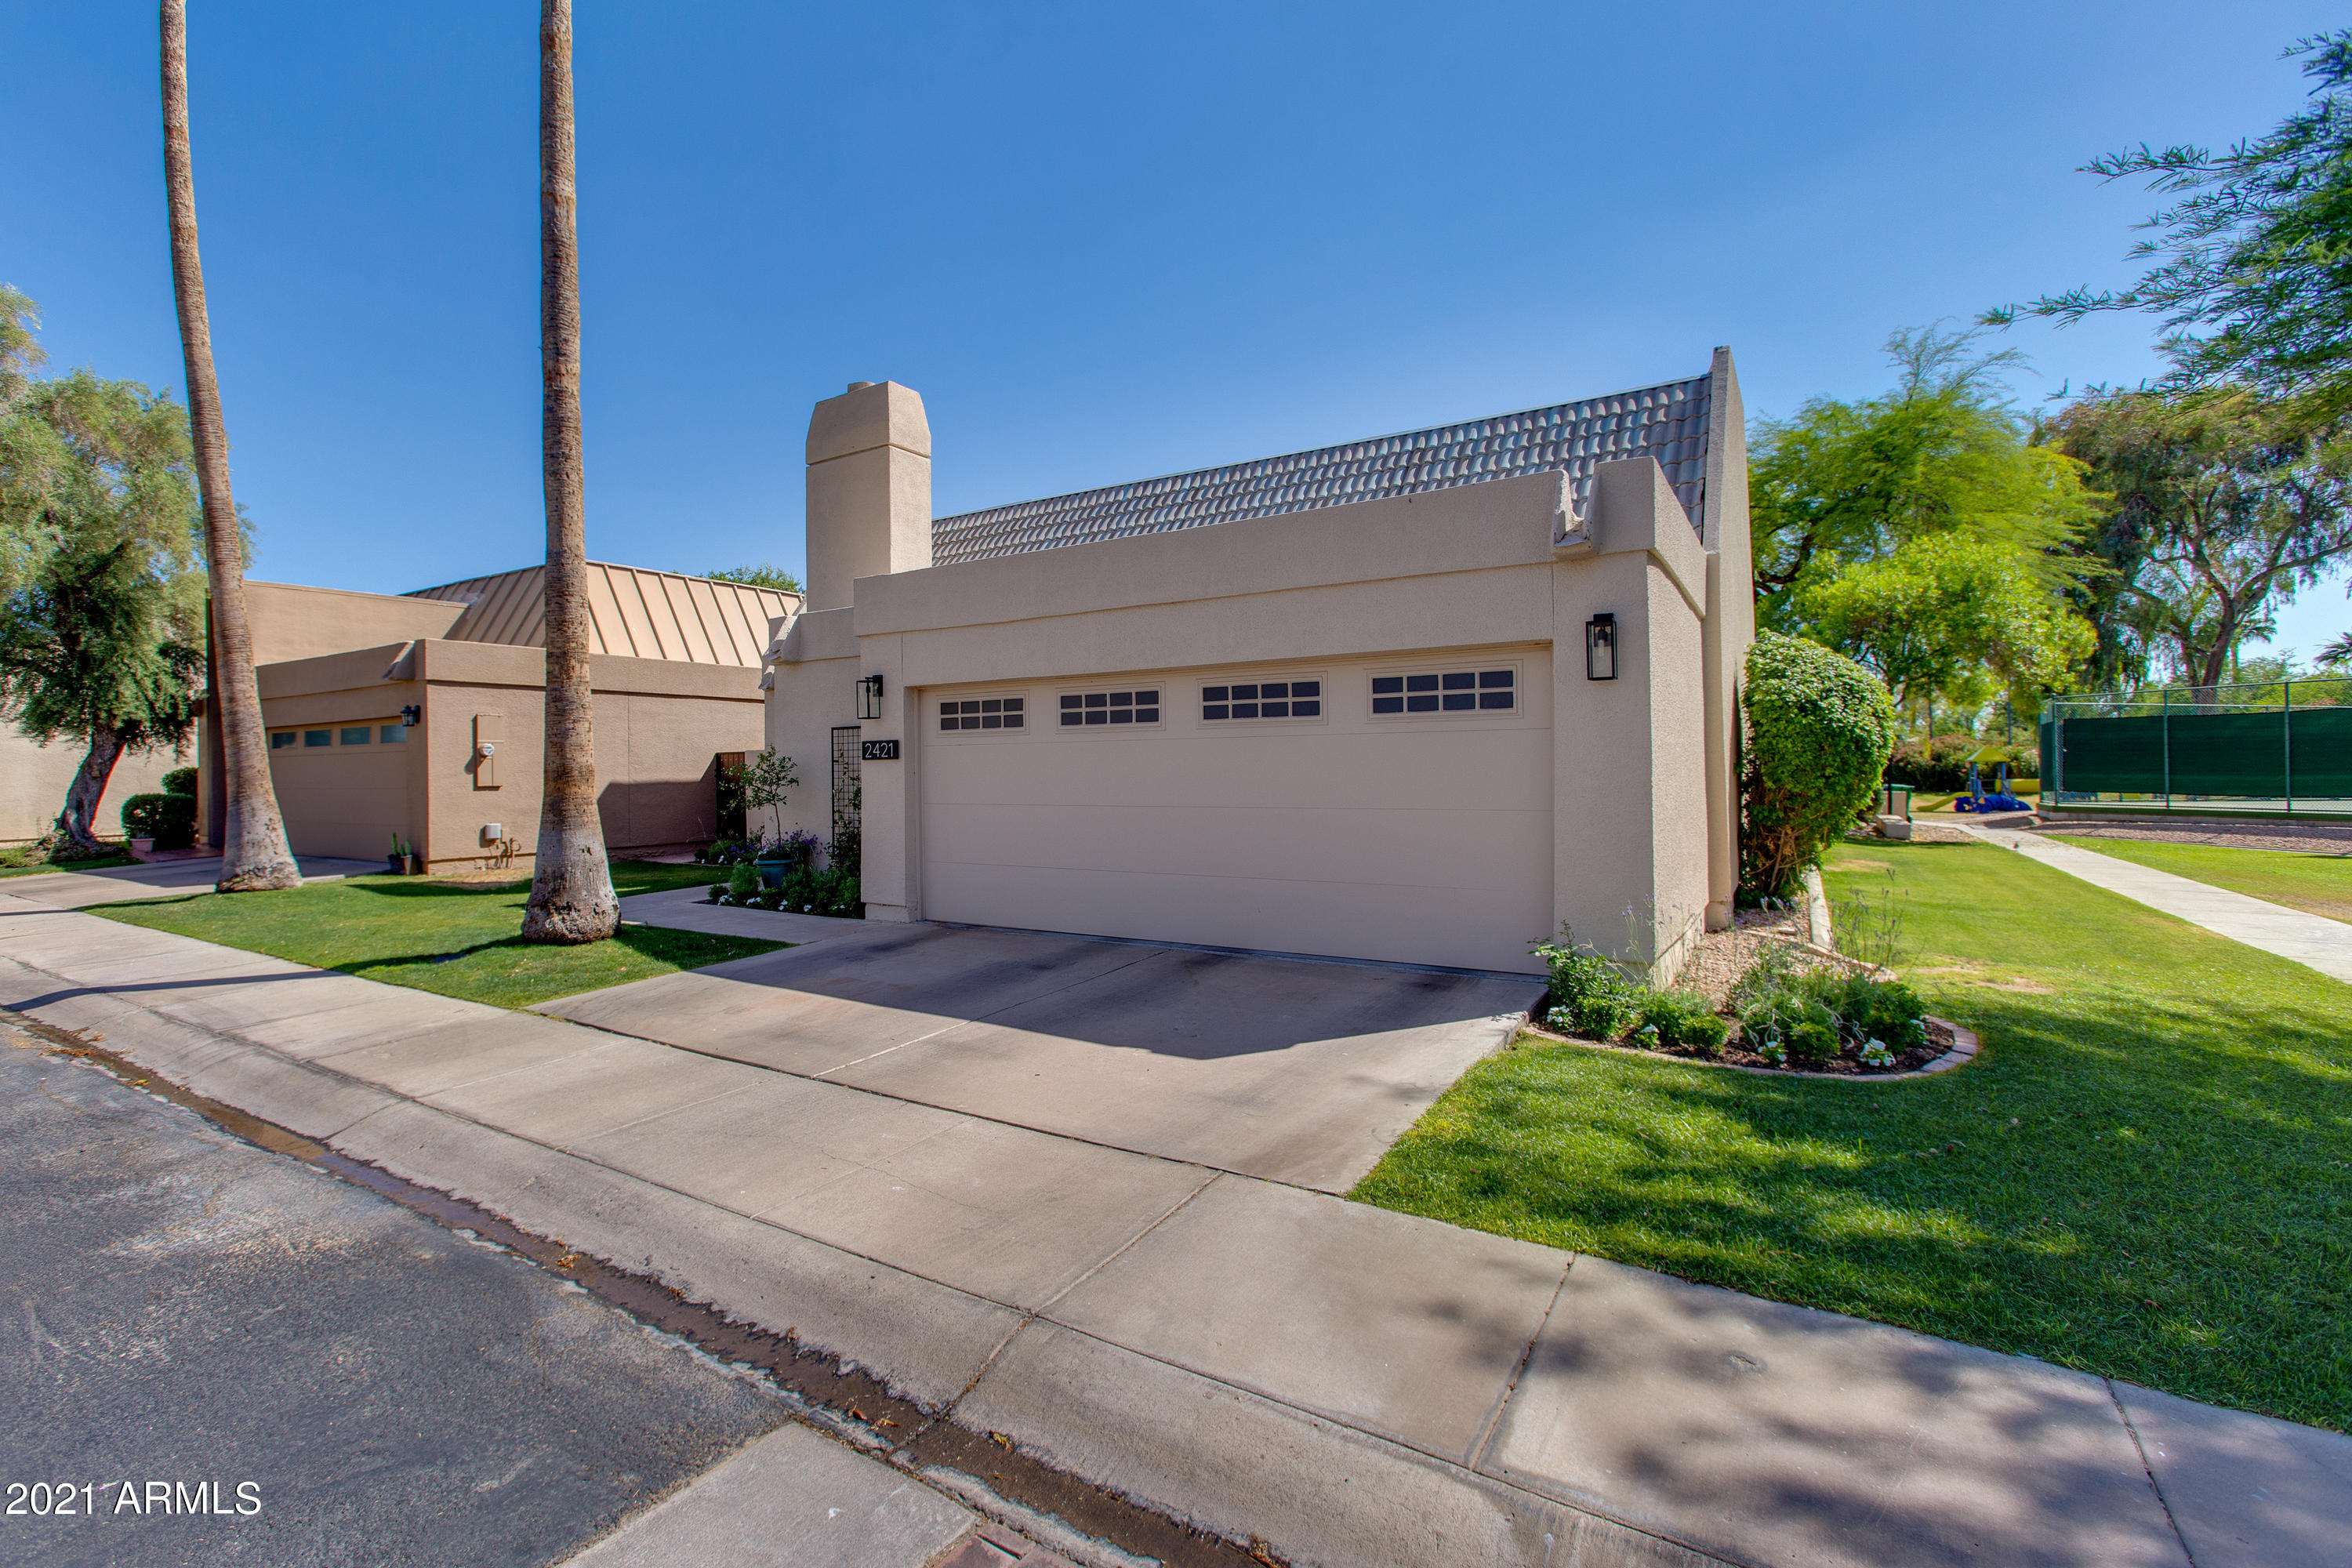 This one checks all of the boxes! Enjoy the privacy of a guard-gated Biltmore community, the modern feel of the clean finishes and open interior concept, the convenience of a low maintenance yard, and the storage offered by a two-car garage. The entire home has been tastefully upgraded and features high ceilings, beautiful tile, quartz countertops, subway tile backsplashes, and contemporary fixtures. The backyard is designed with lush green grass and a spacious wood-beamed patio. Adjacent to the community tennis courts, this end unit feels more like a corner lot on a quiet street.